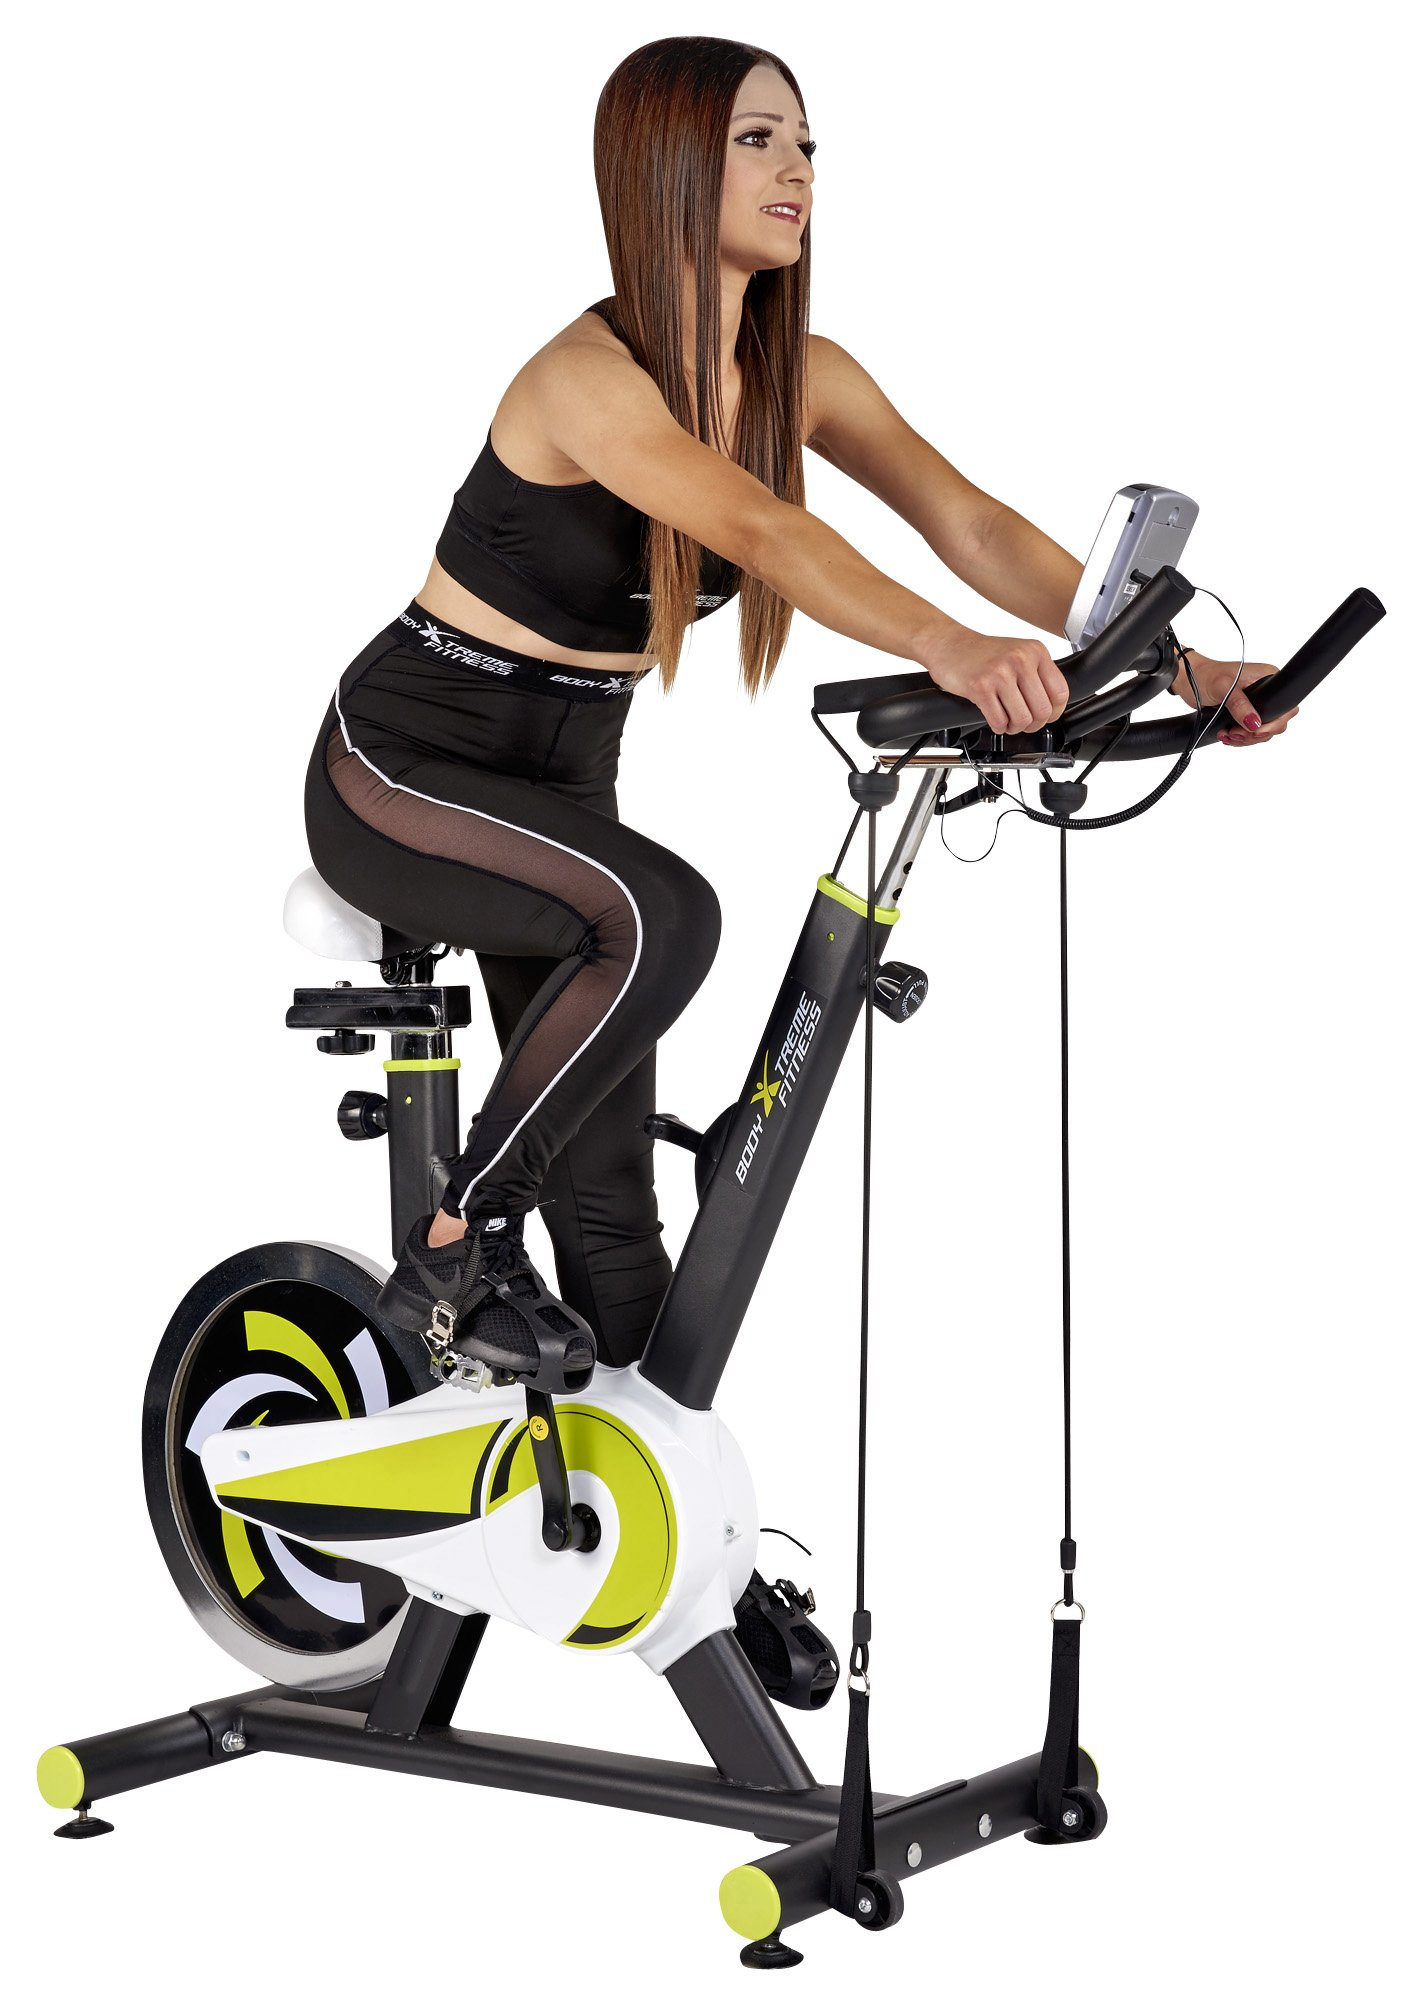 Body Xtreme Fitness Lime Green/Black Exercise Bike, Home Gym Equipment, 40lb Flywheel, Resistance Bands, Water Bottle + BONUS COOLING TOWEL by Body Xtreme Fitness USA (Image #2)